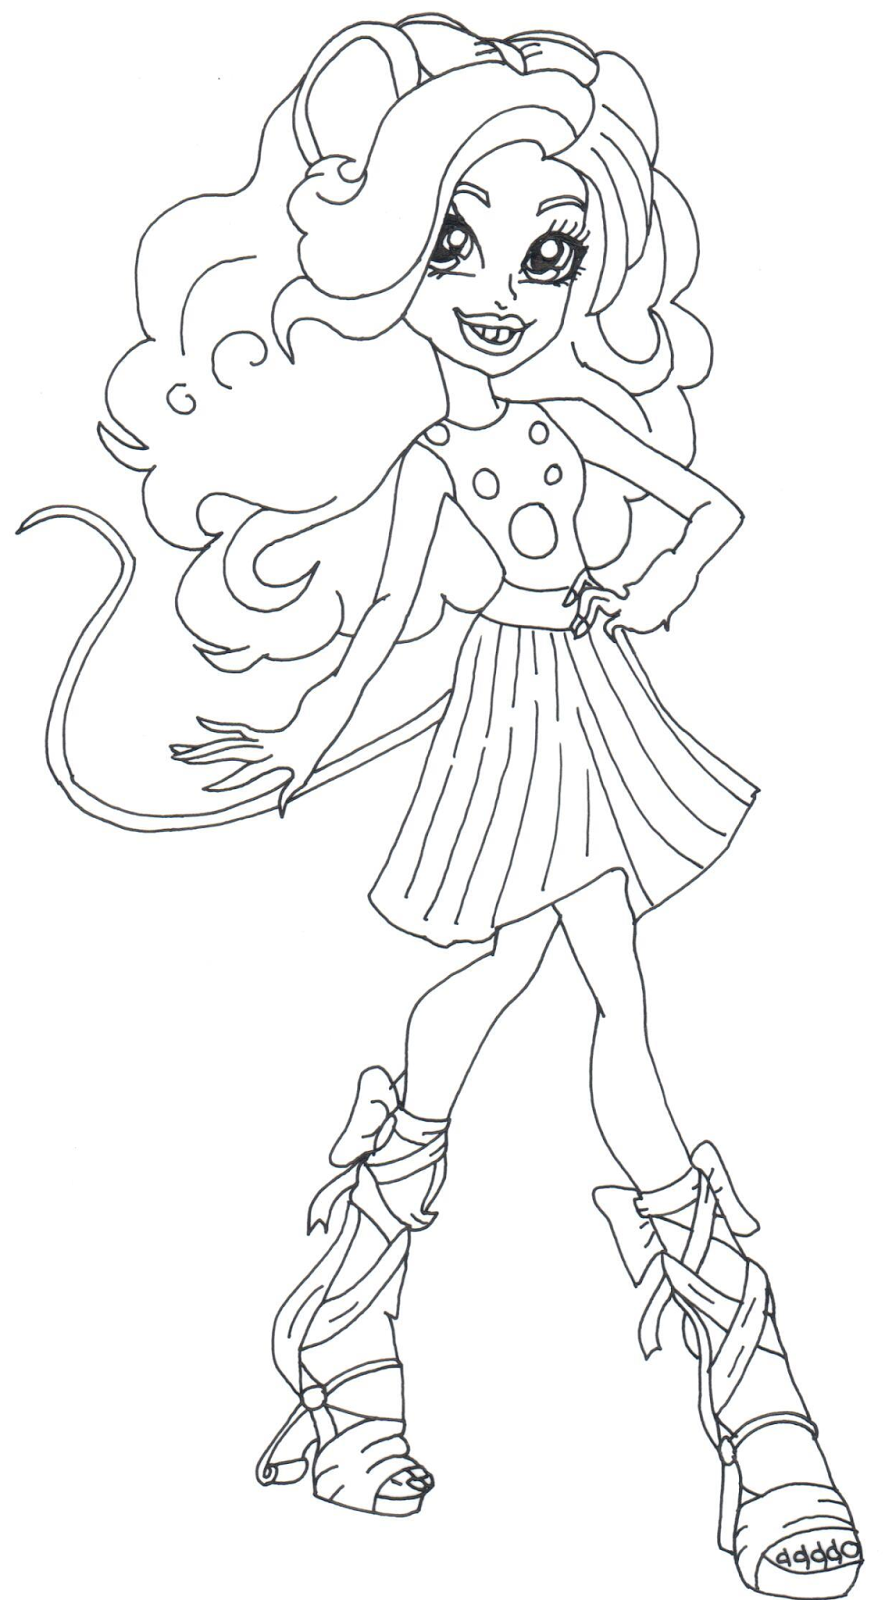 Free printable monster high coloring pages october 2015 for Monster high printables coloring pages